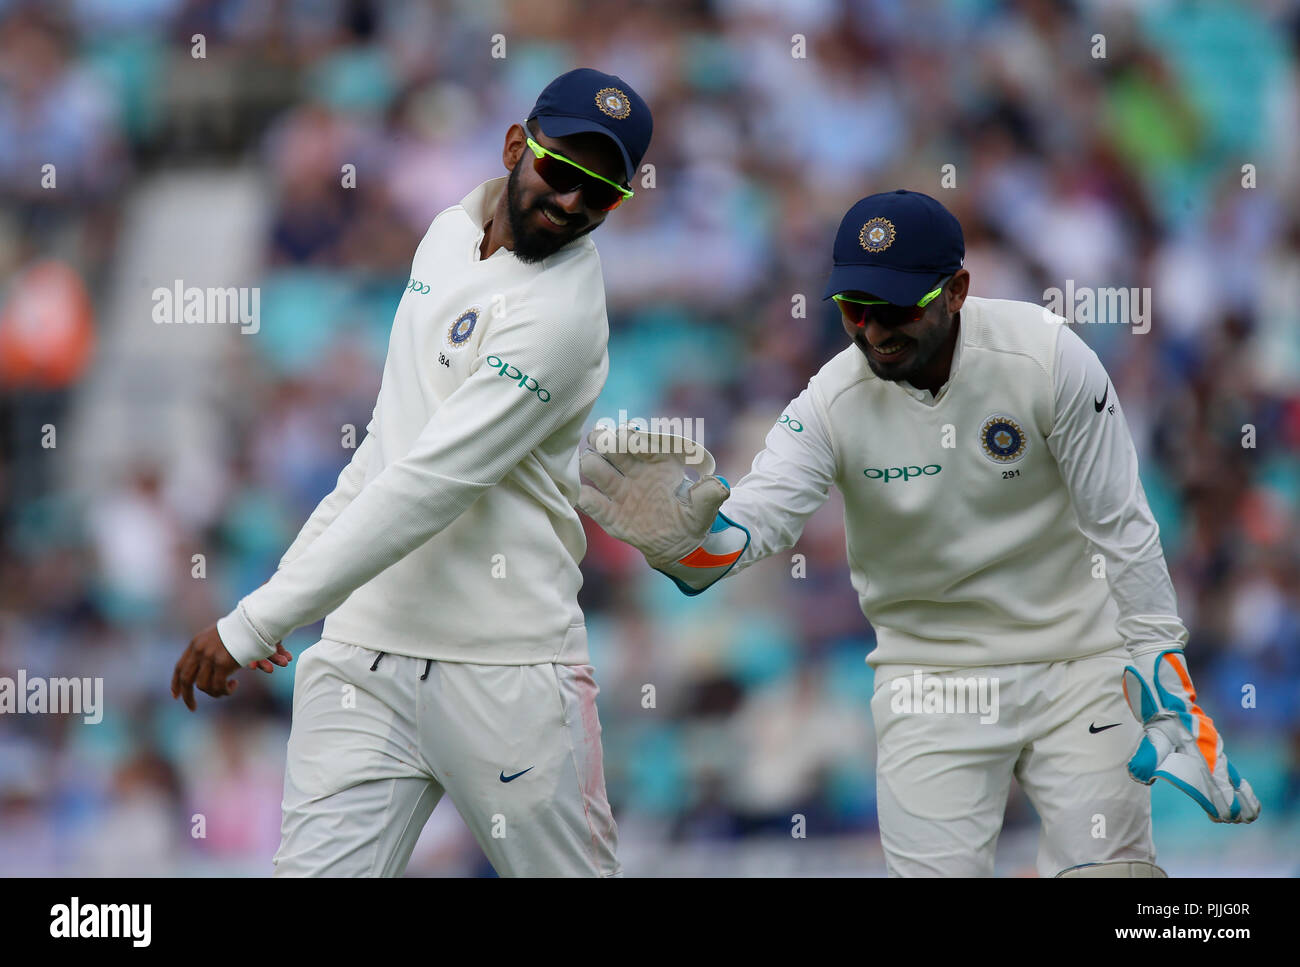 Kia Oval, London, UK. 7th Sep, 2018. Specsavers International Test Match Cricket, 5th test, day 1; KL Rahul shares a joke with India wicketr keeper Rishabh Pant Credit: Action Plus Sports/Alamy Live News - Stock Image